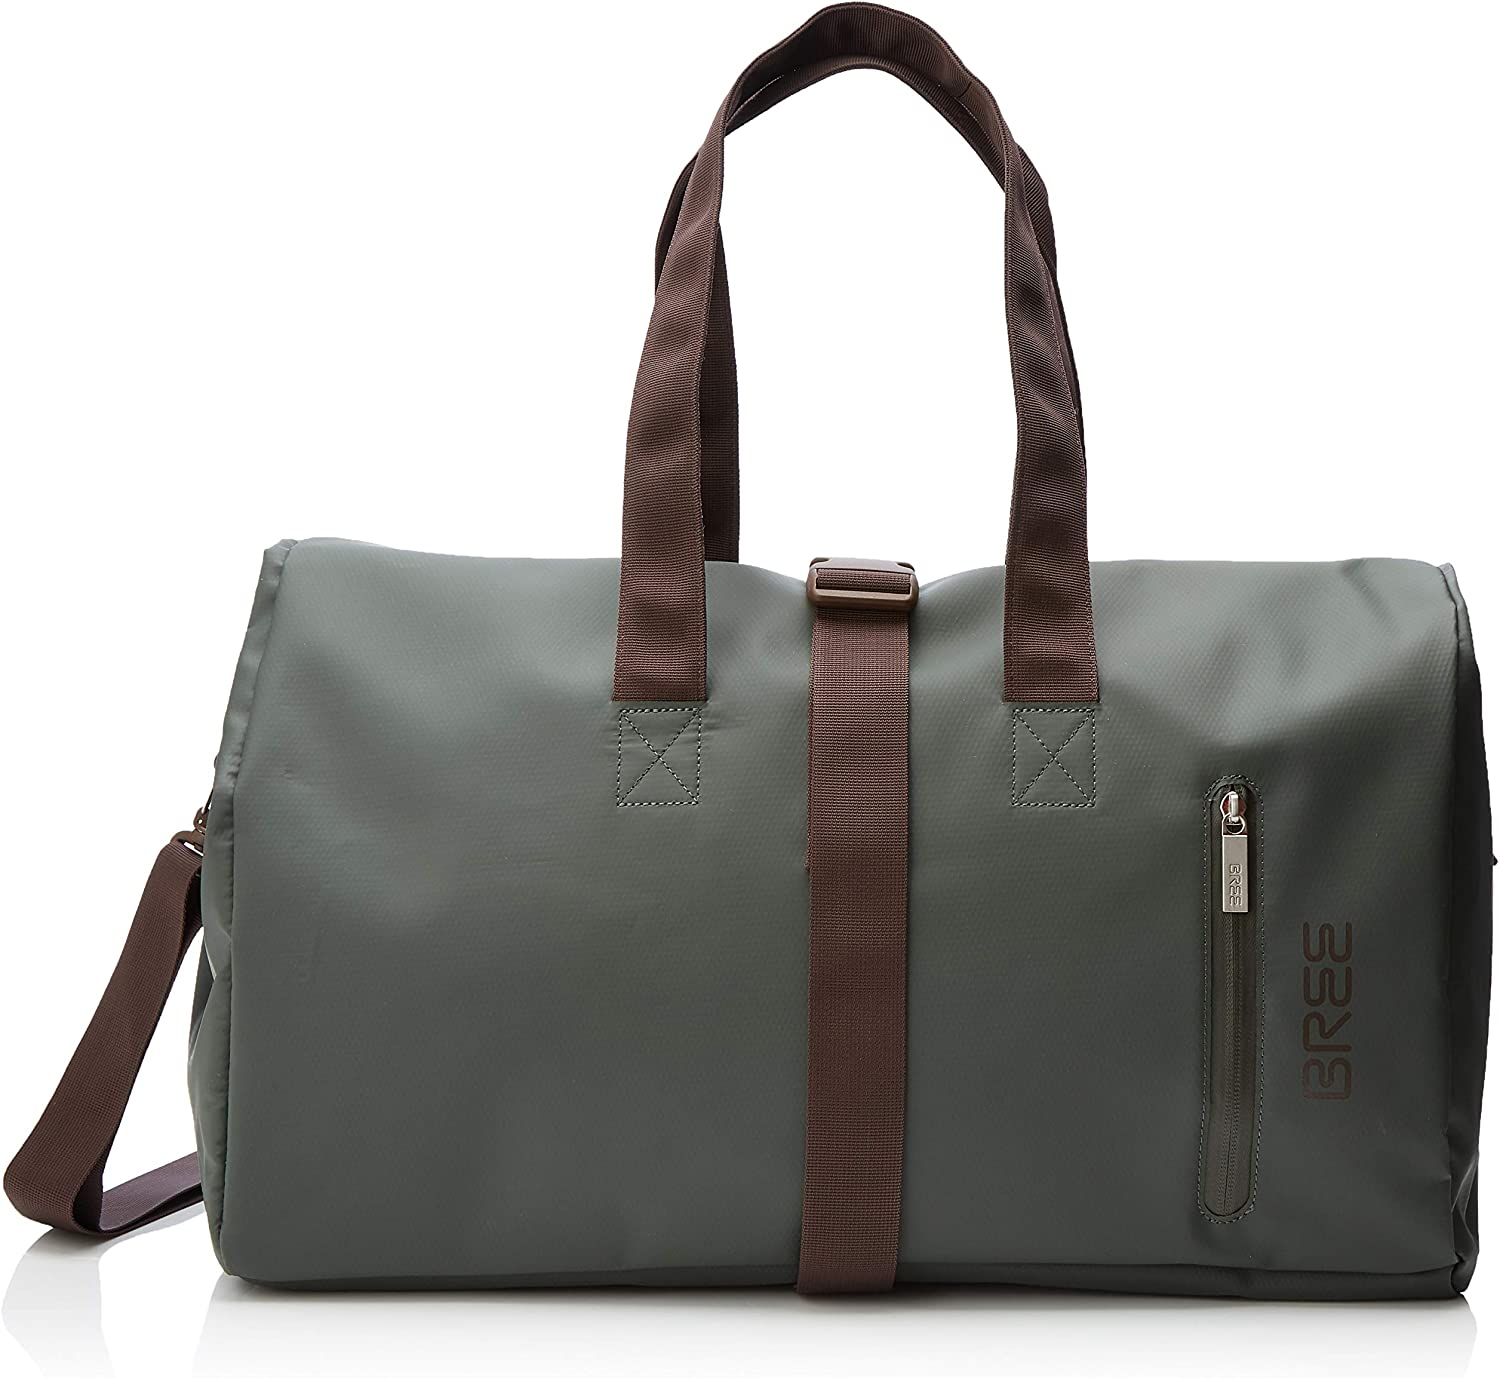 BREE Collection Punch 723, Climbing Ivy, Weekender S, Unisex Adults' TopHandle Bag, Green (Climbing Ivy), 25x44x50 cm (B x H T)